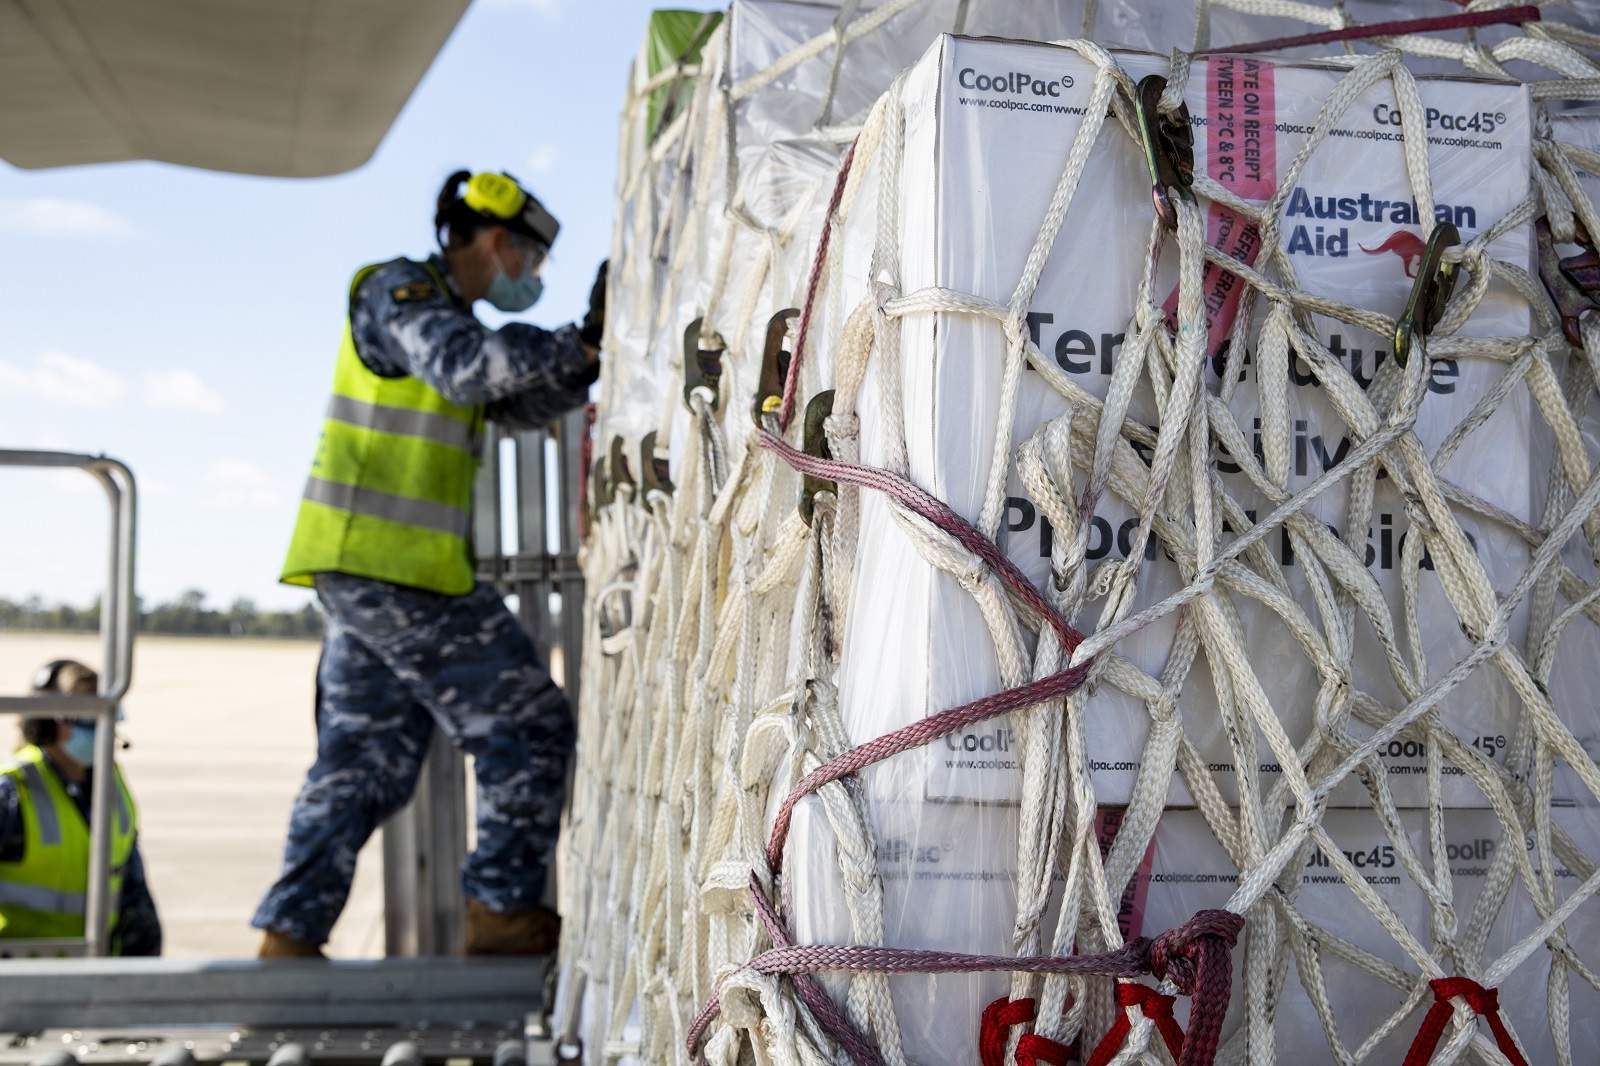 Air Movements Operators from No 23 Squadron load pallets of AstraZeneca vaccines and Covid-19 medical supplies bound for Fiji onto a C-130J Hercules at RAAF Base Amberley (defence.gov.au)